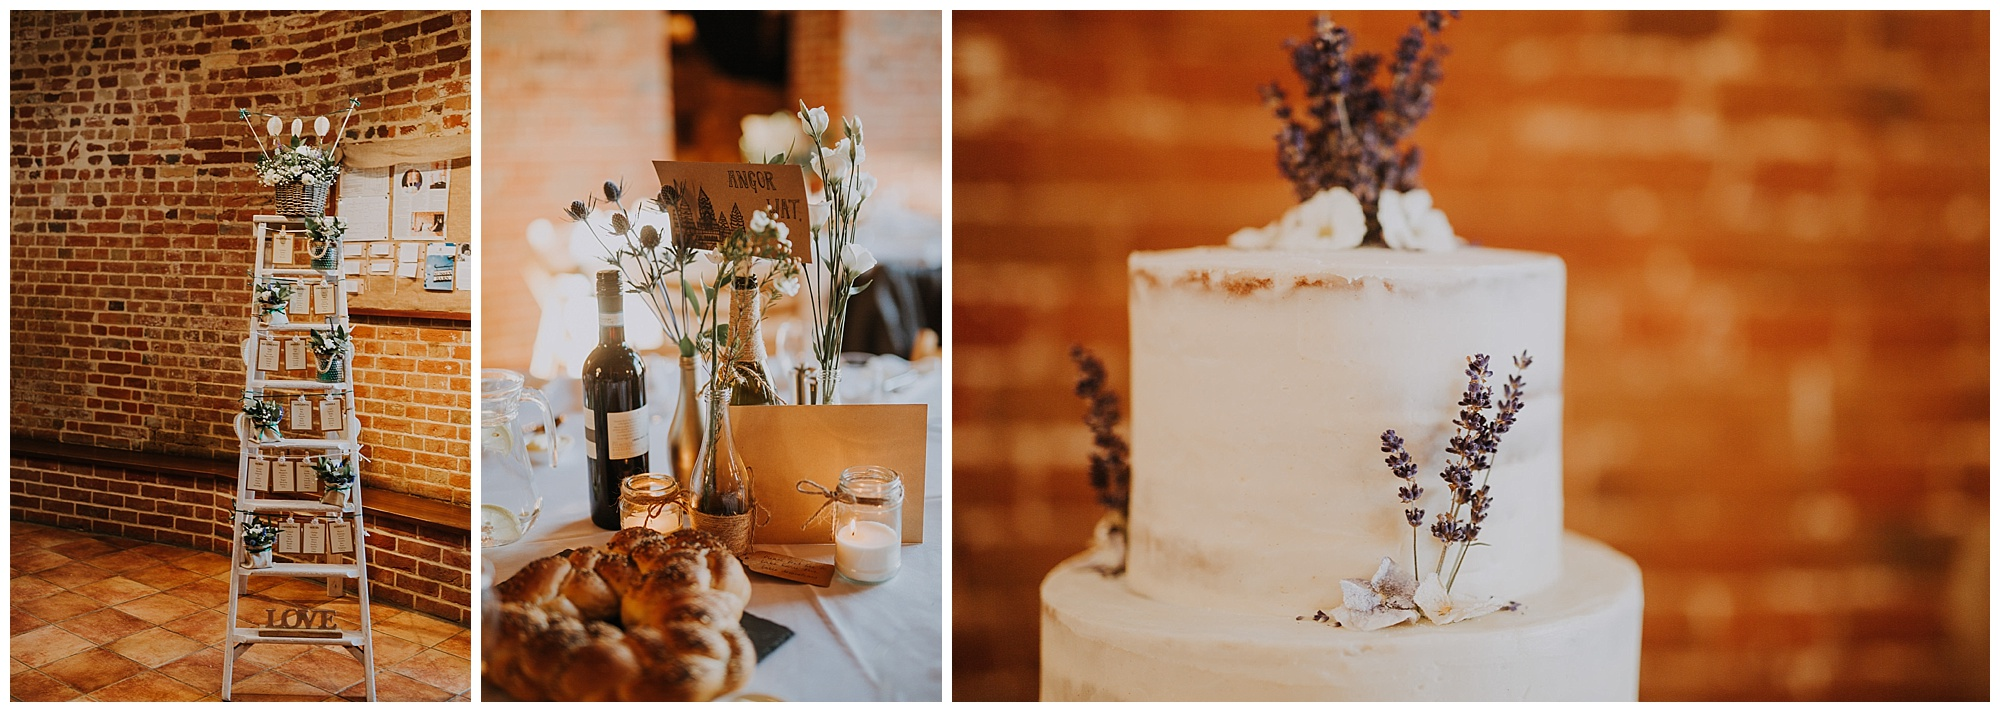 wedding cake and baked bread